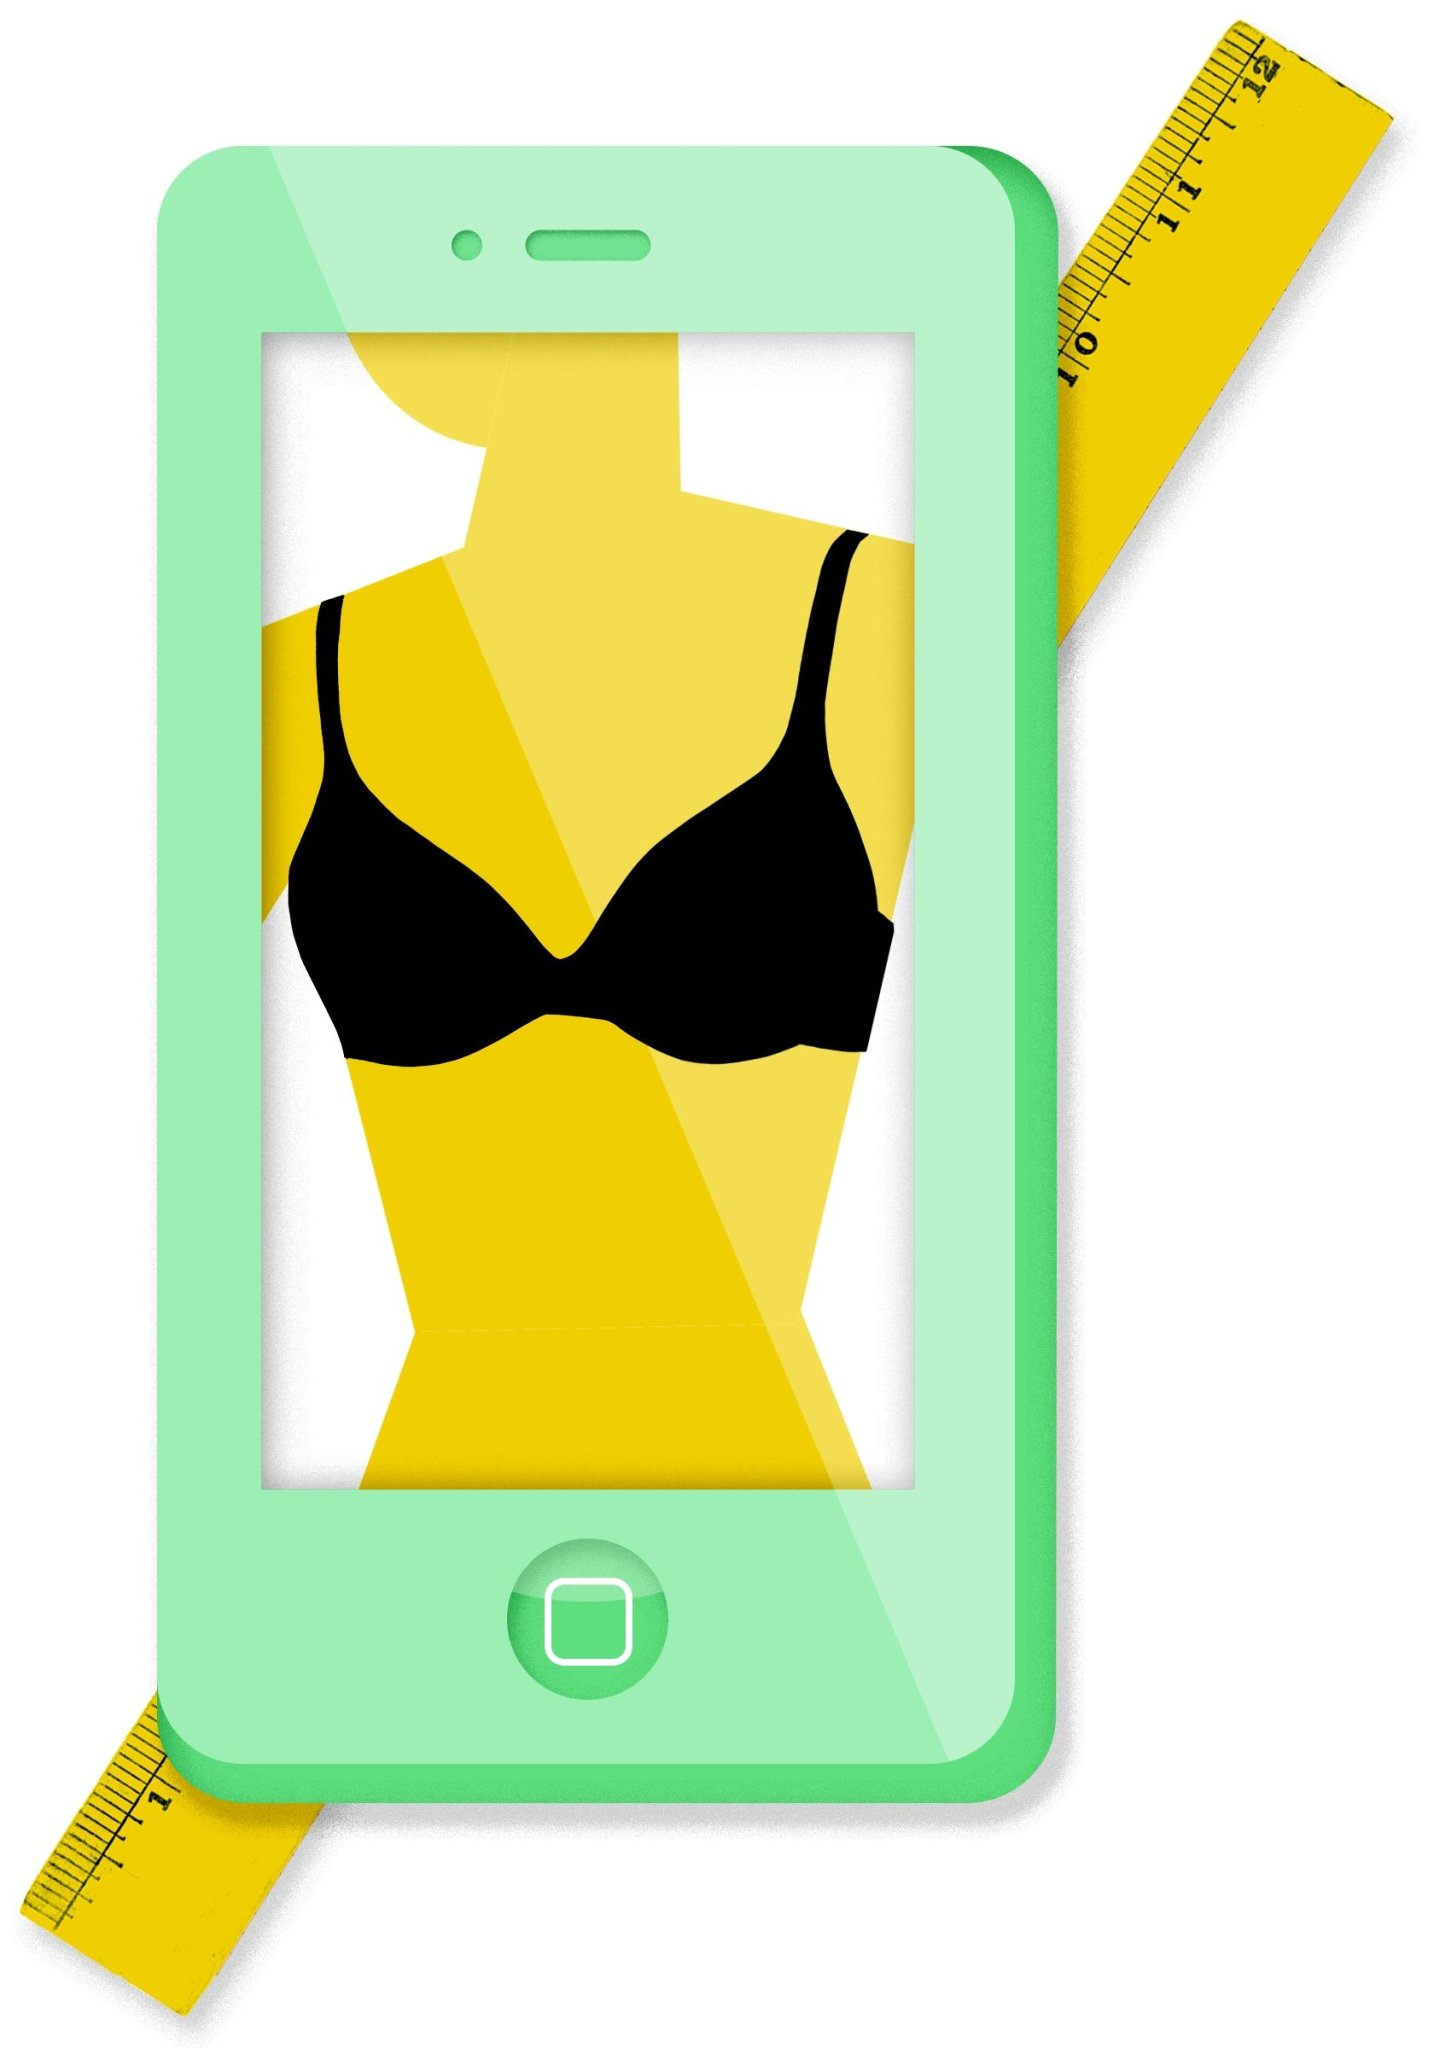 ThirdLove: Bra app that sizes you up with a pic